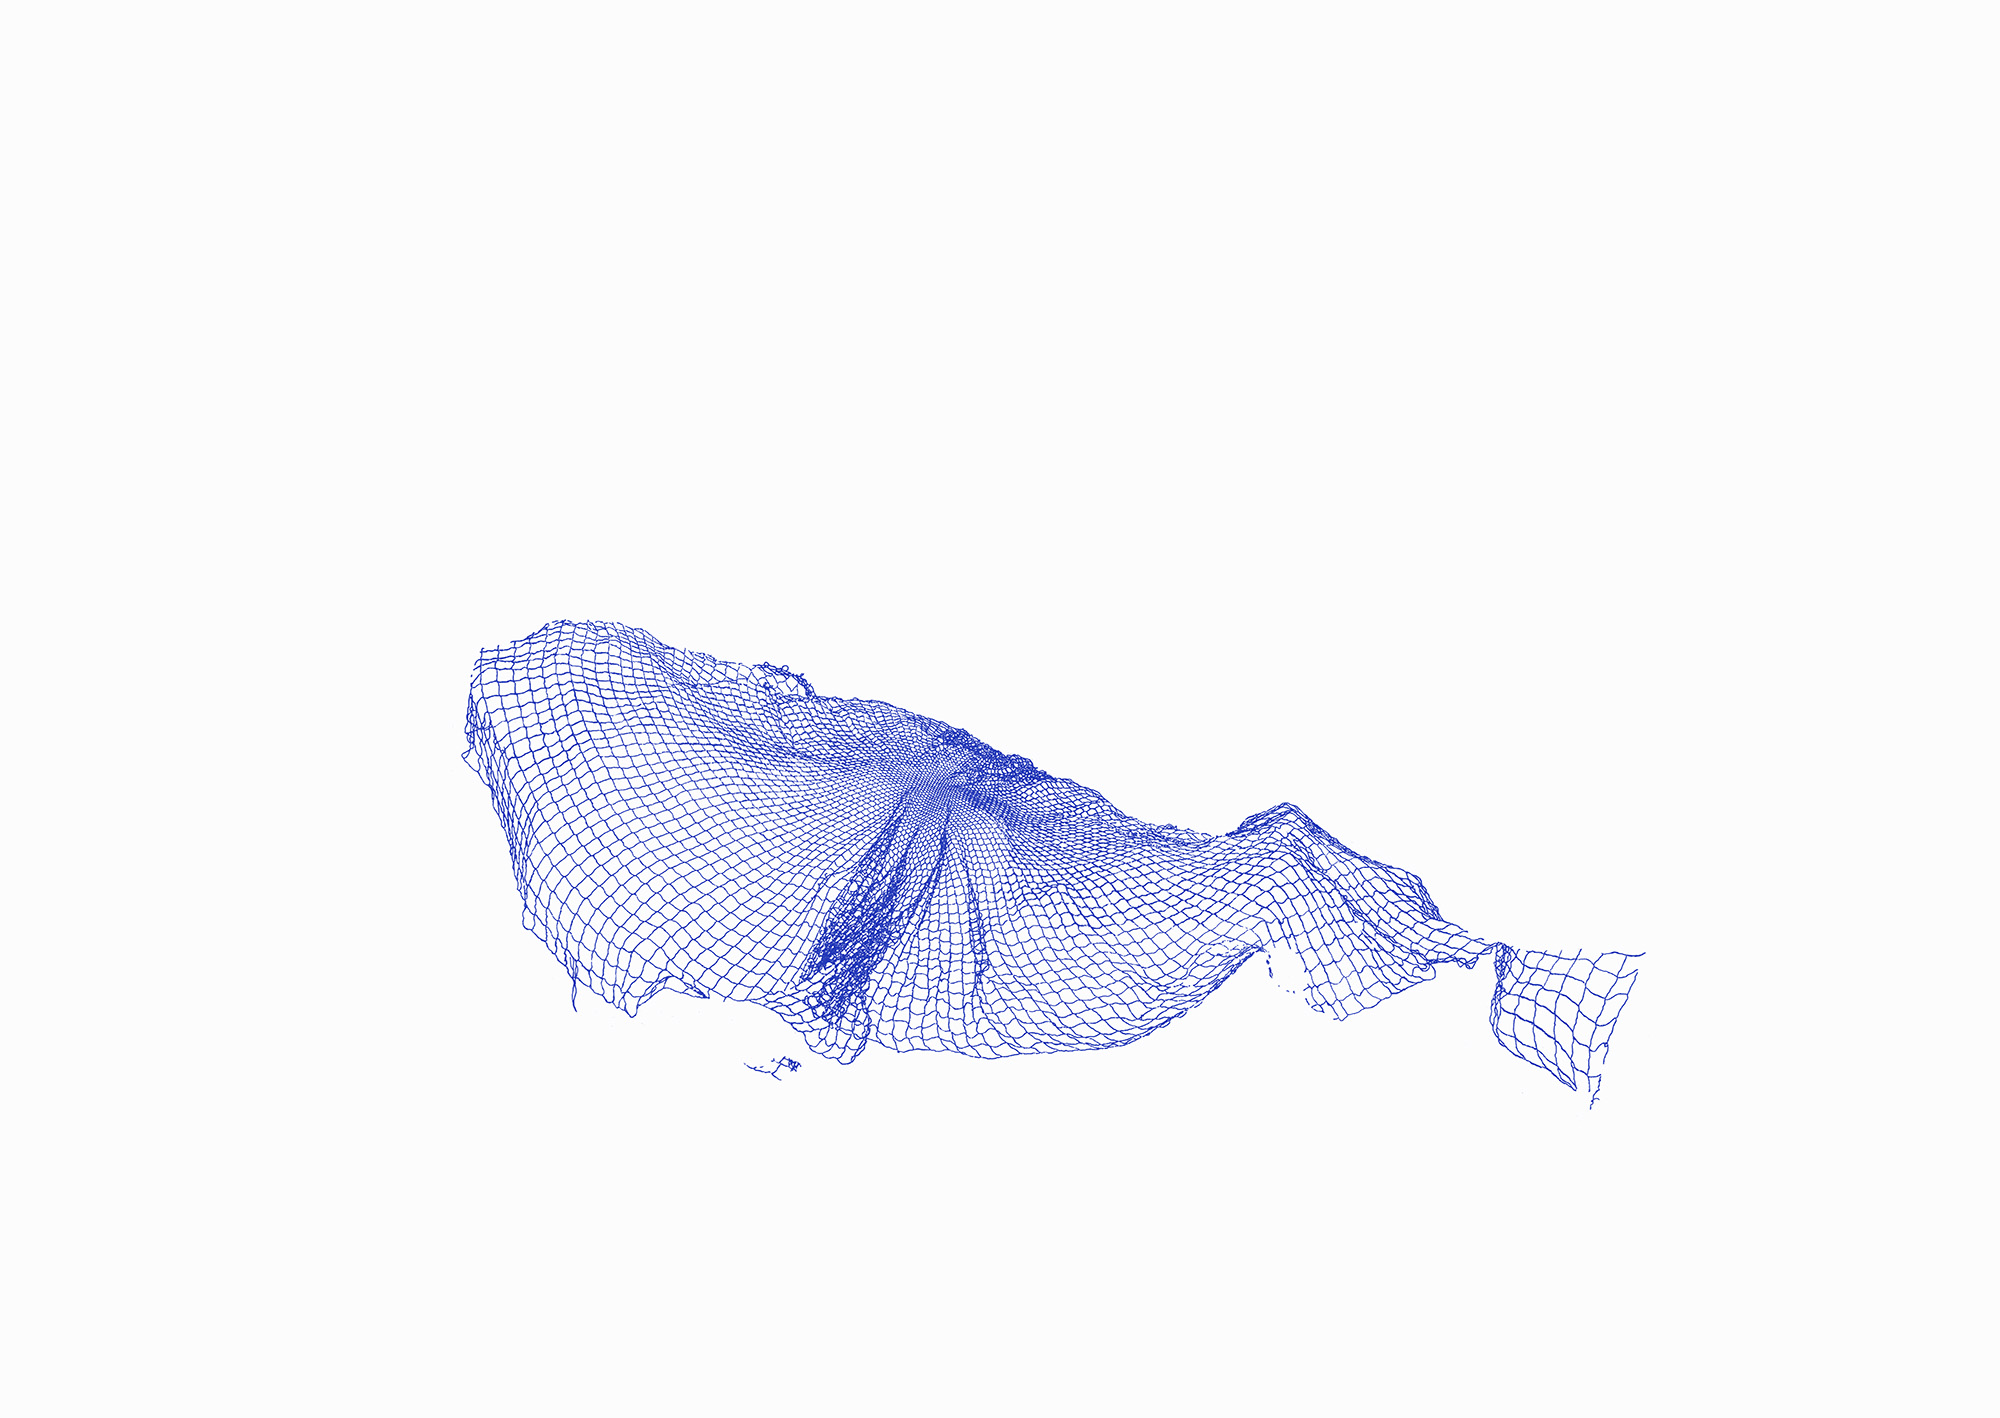 blueprint for an iceberg ,  2019 risograph print, edition of 50 11.5 x 16.5 in.   signed, editioned prints    available for sale